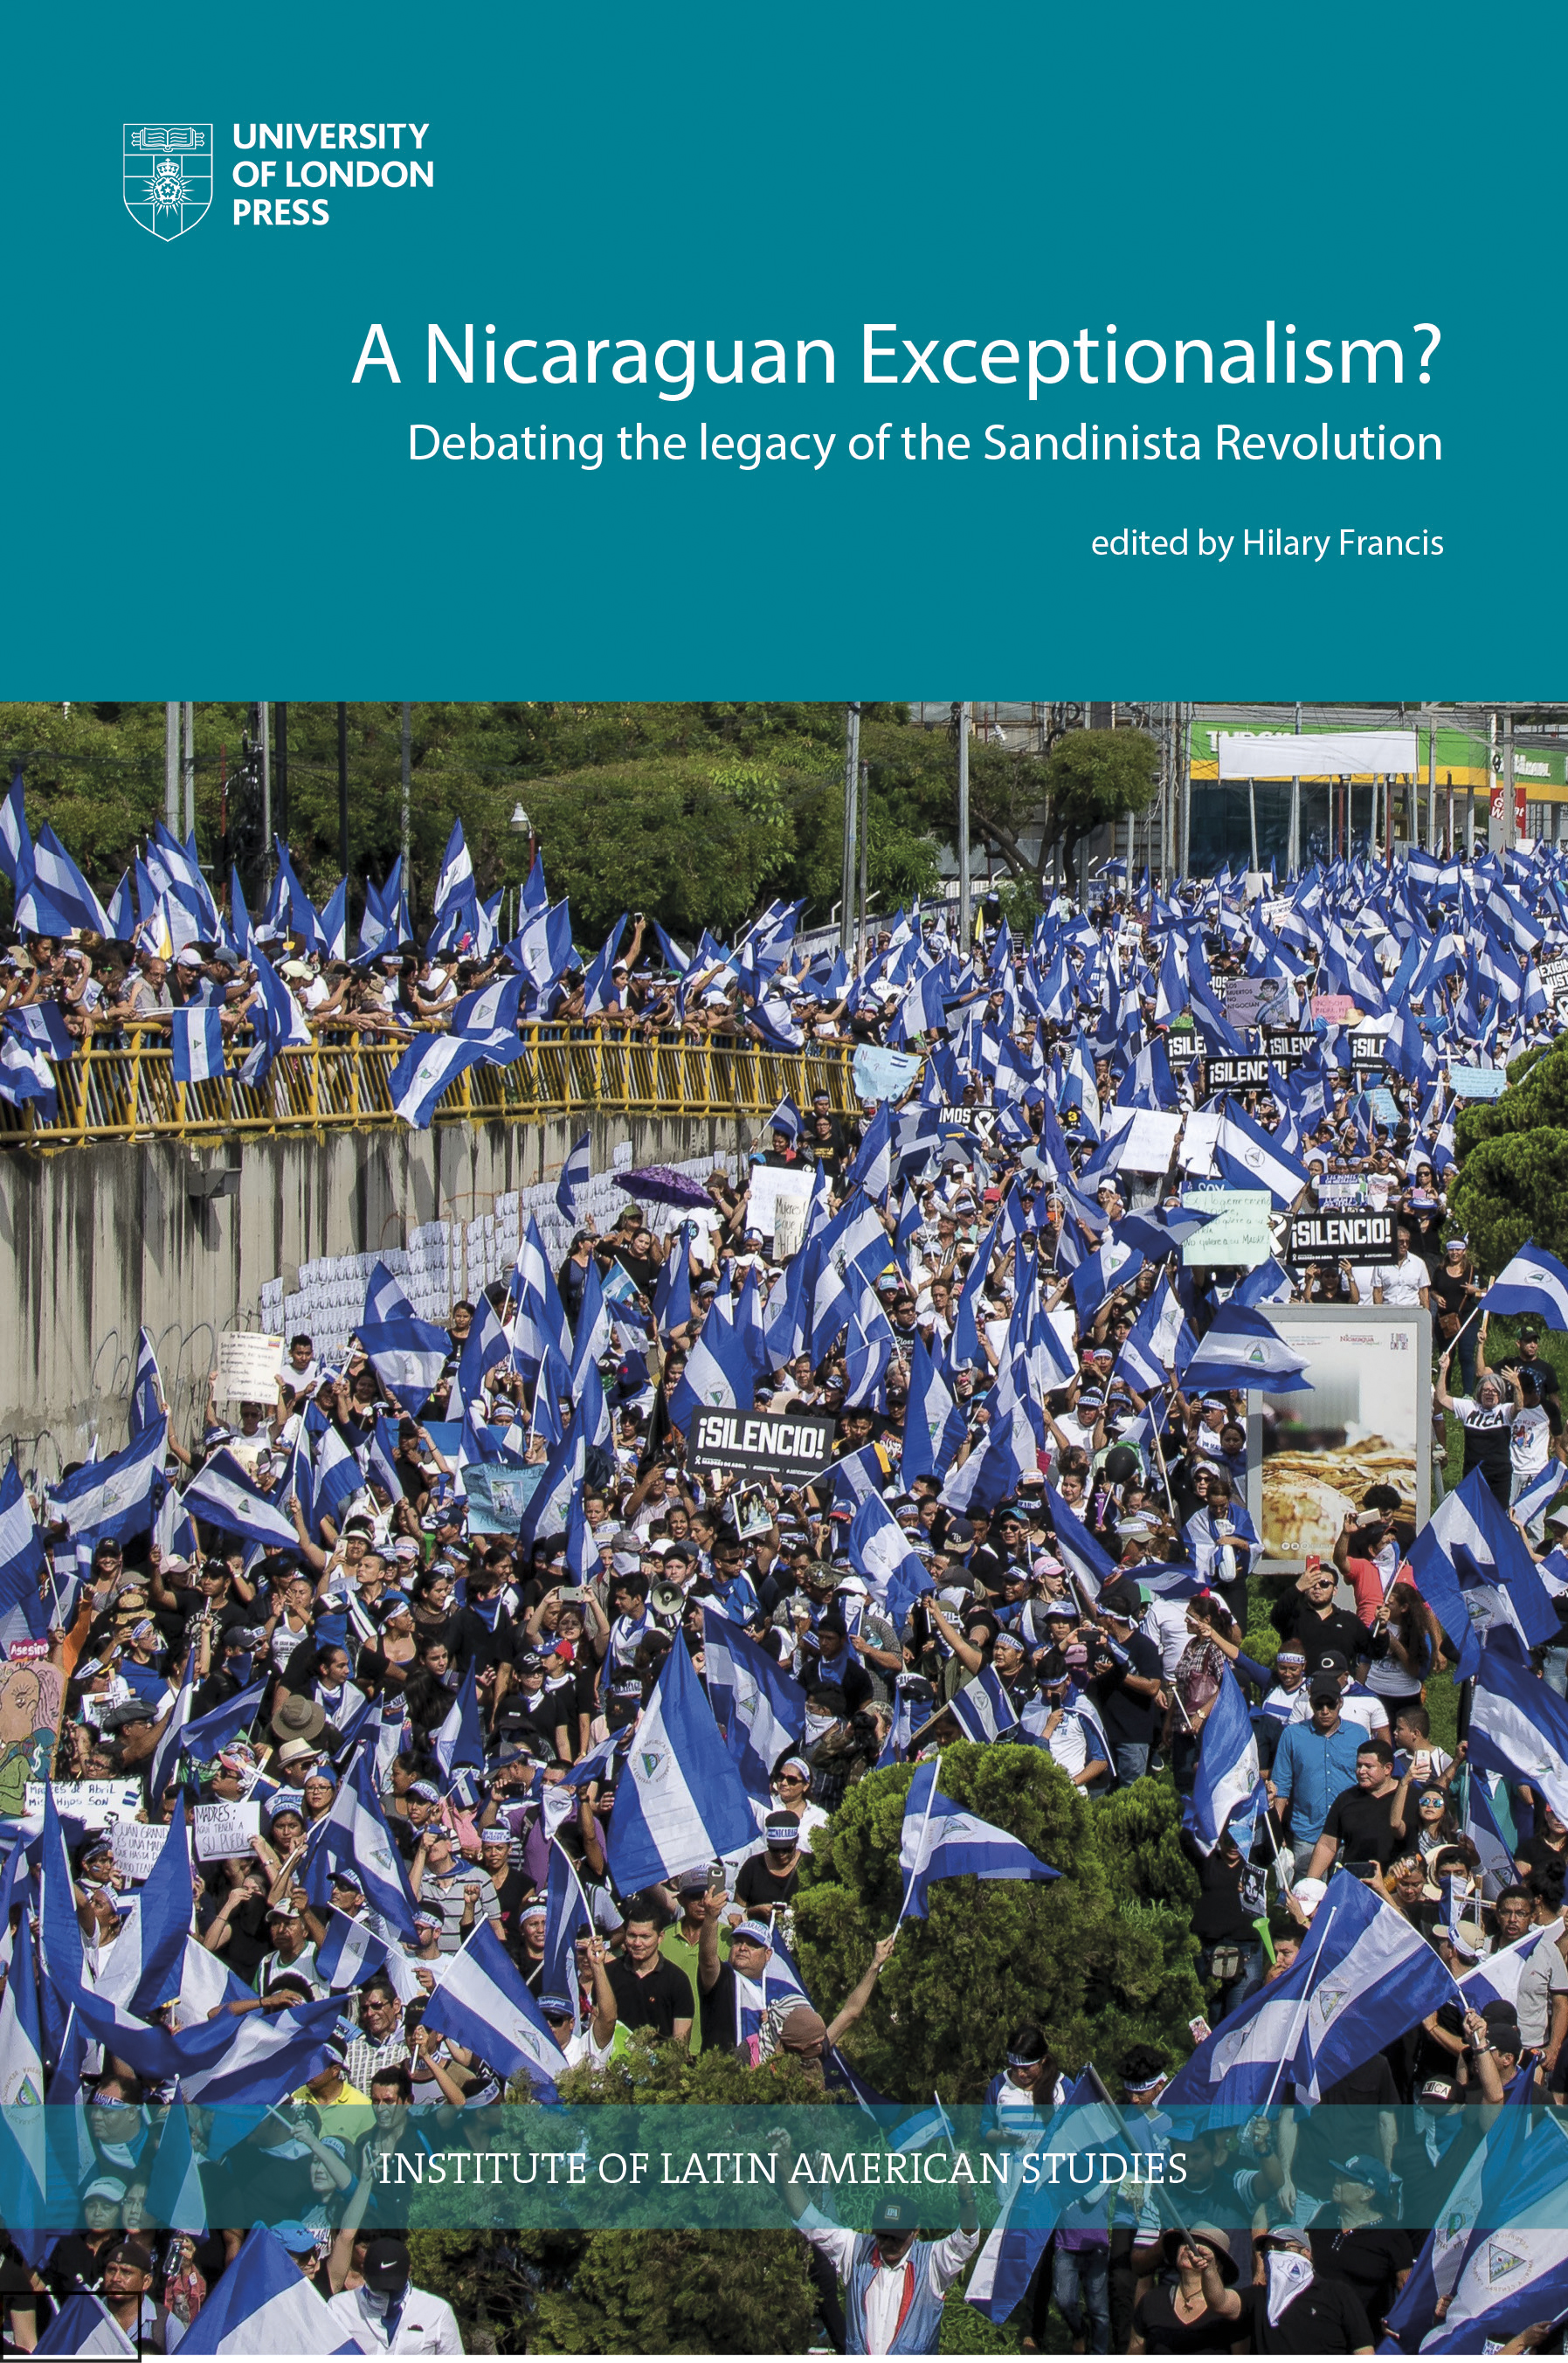 Nicaraguan Exceptionalism? Debating the Legacy of the Sandinista Revolution